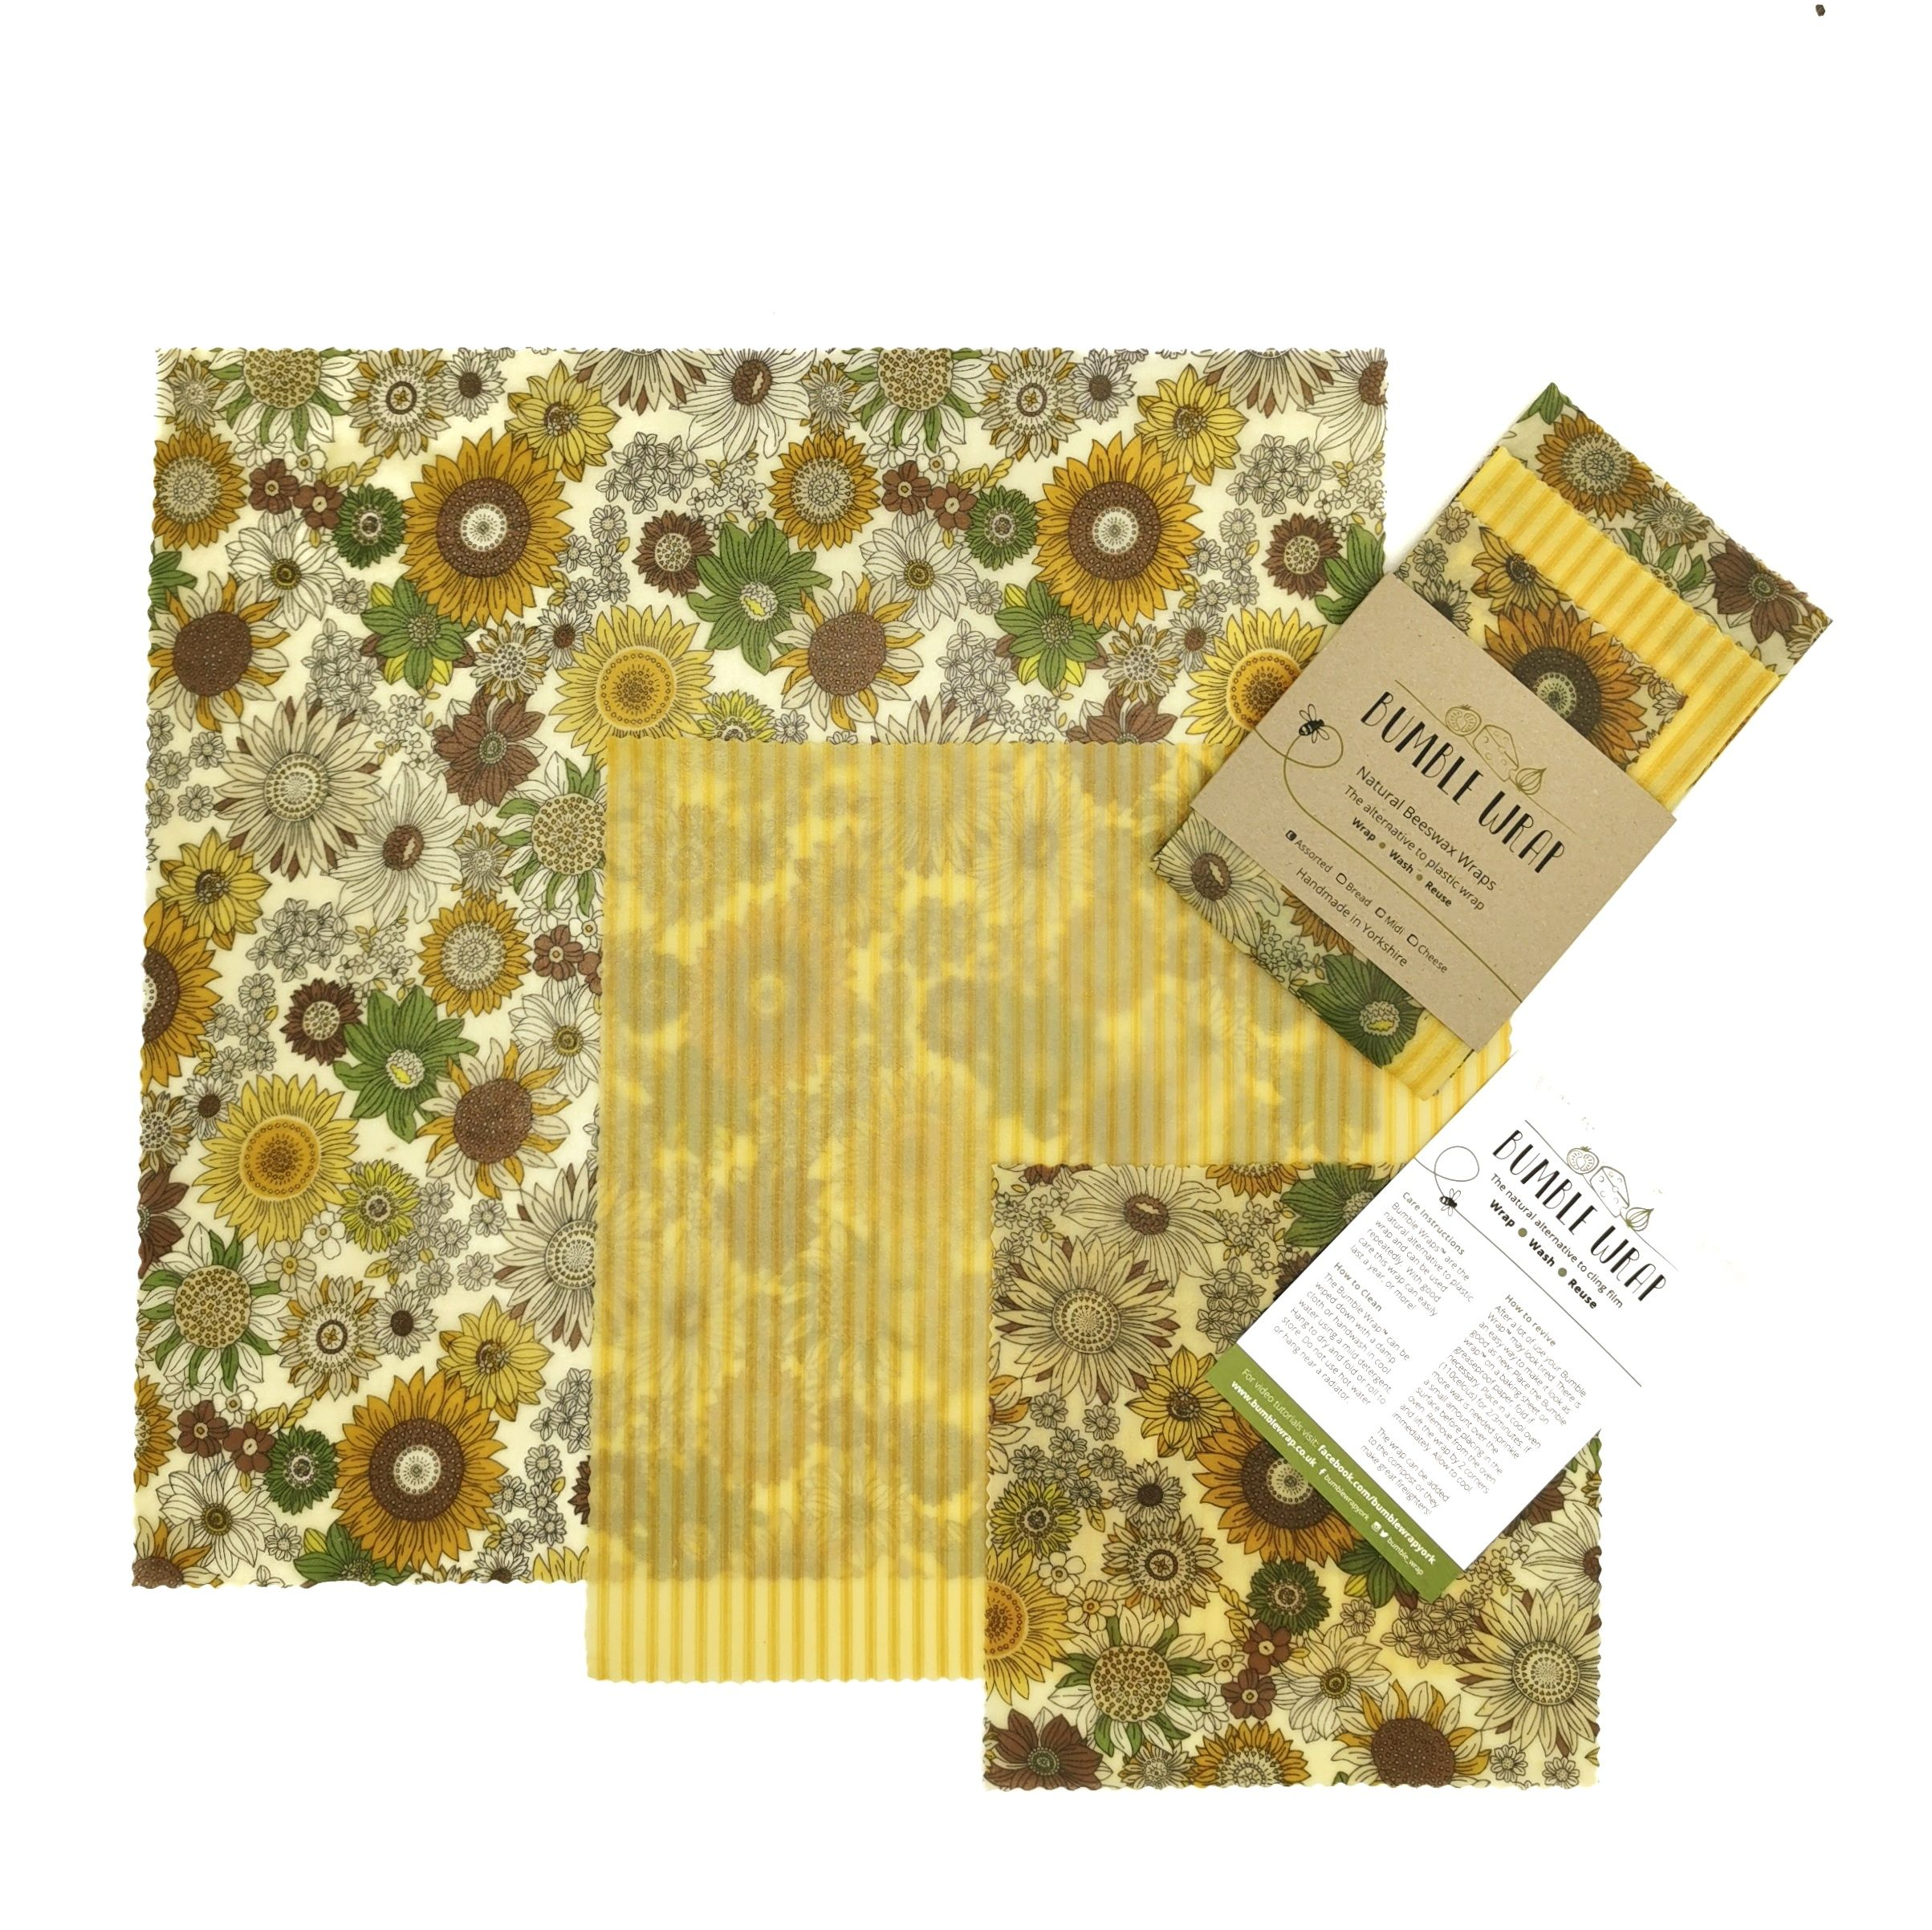 Bumble Wrap Assorted Kitchen pack